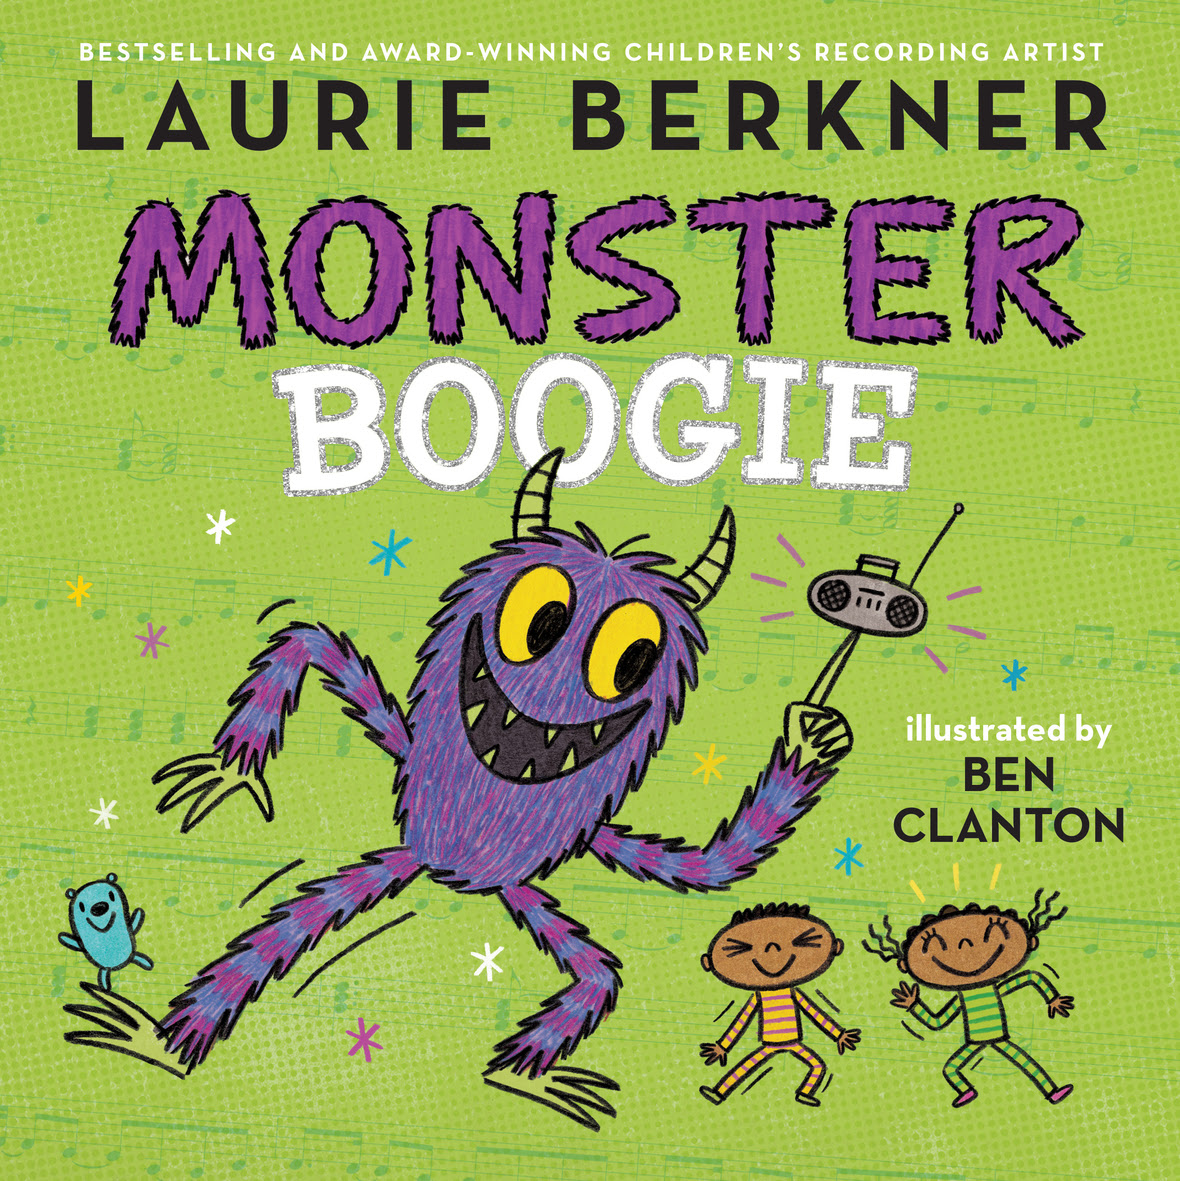 Laurie Berkner Band's Monster Boogie Halloween Concert in NYC+a Giveaway